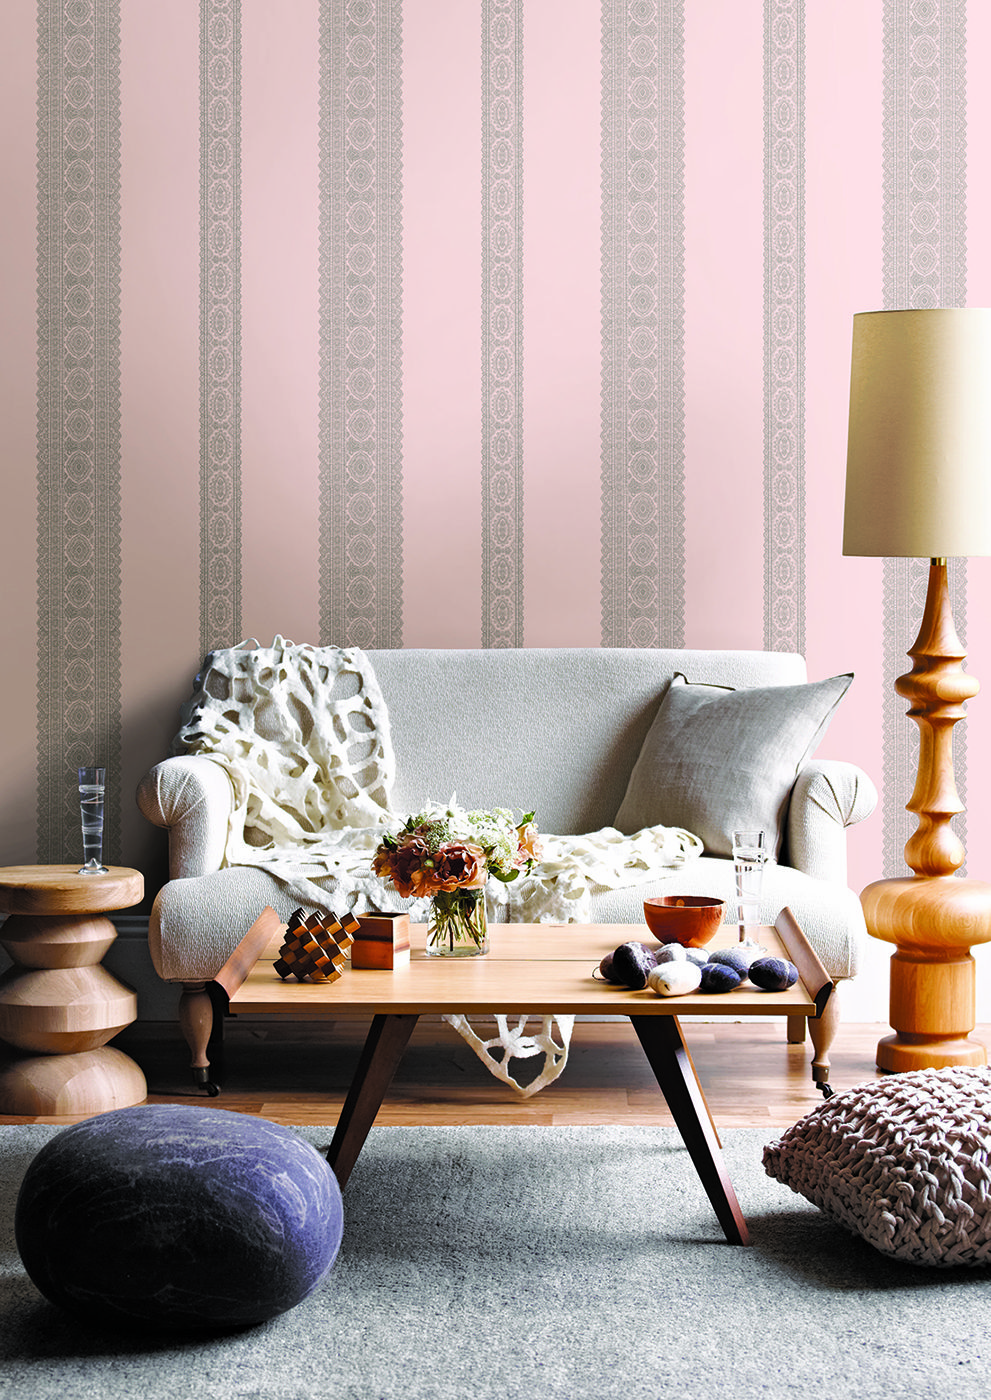 Pretty pink lace effect striped wallpaper design by Albany